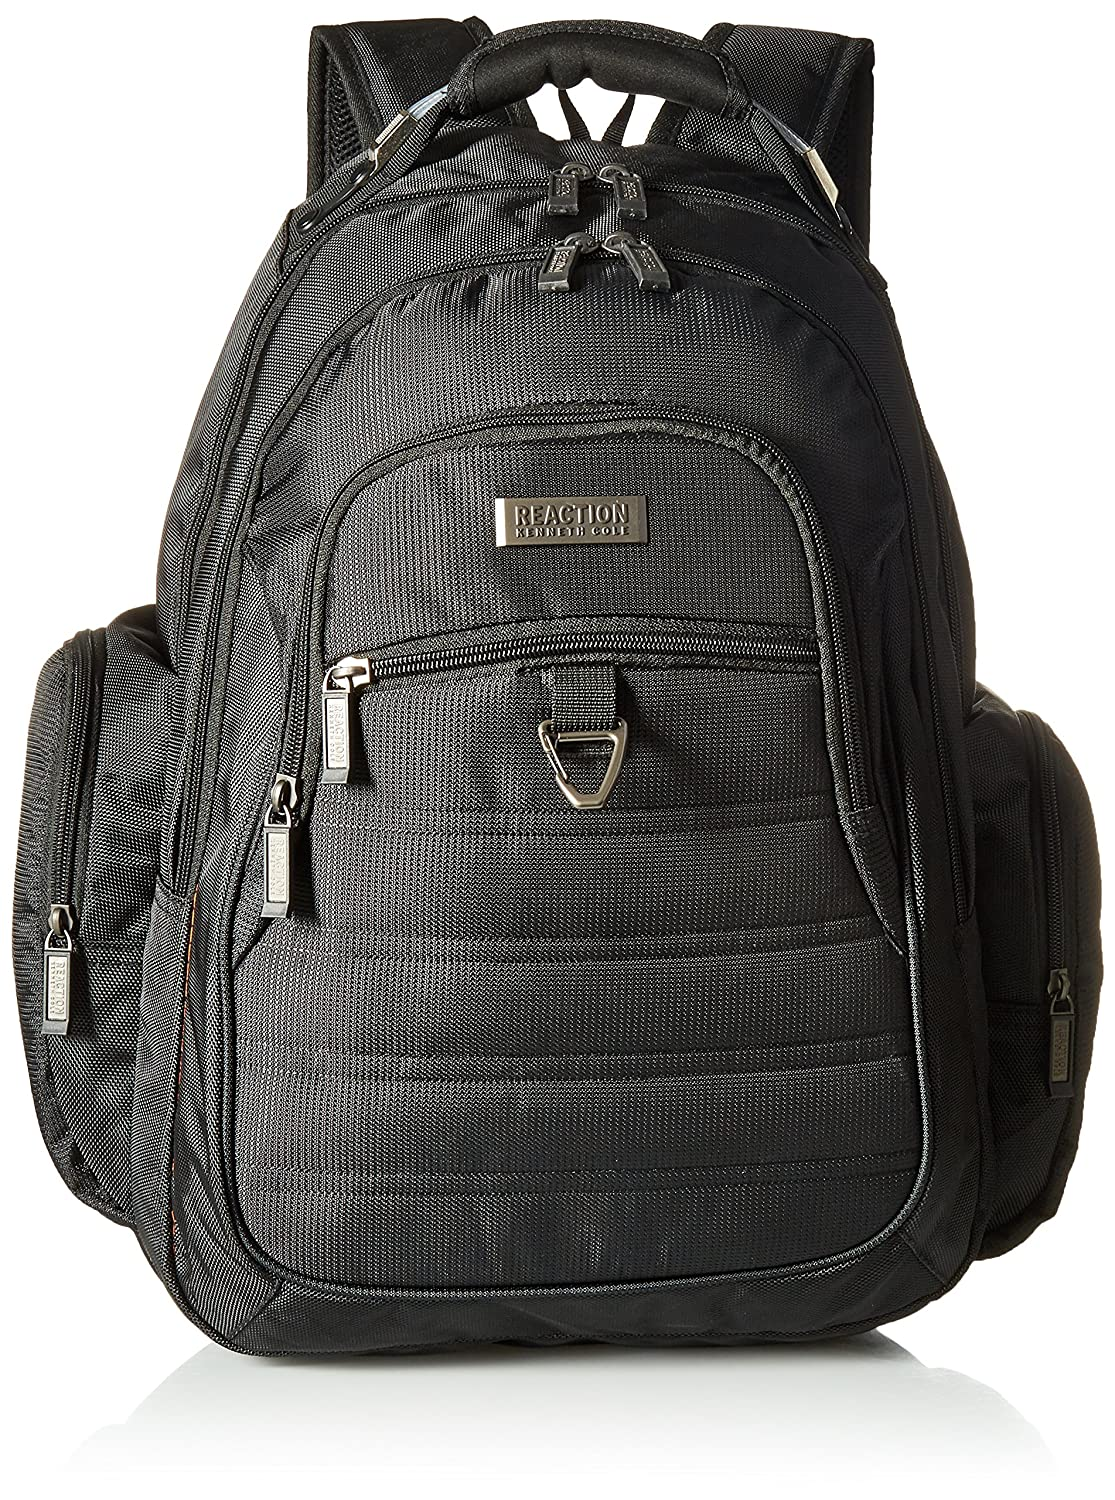 9b6b664802bc Amazon.com: Kenneth Cole Reaction 1680d Polyester Dual Compartment ...